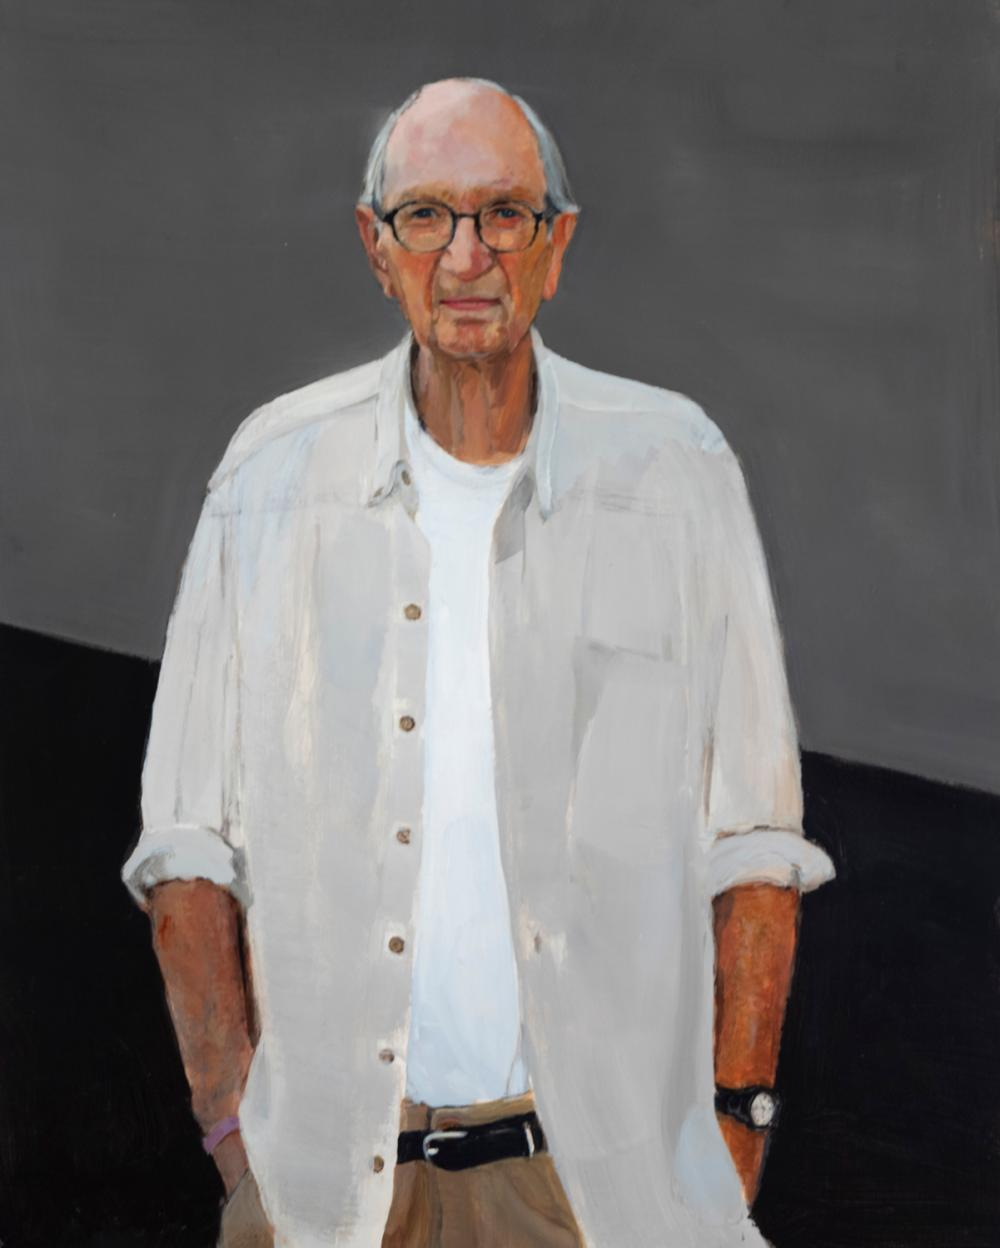 Ed Smith, Indiana/ Missouri (1920-2018), Self-Portrait, acrylic on canvas, 30 x 24 inches